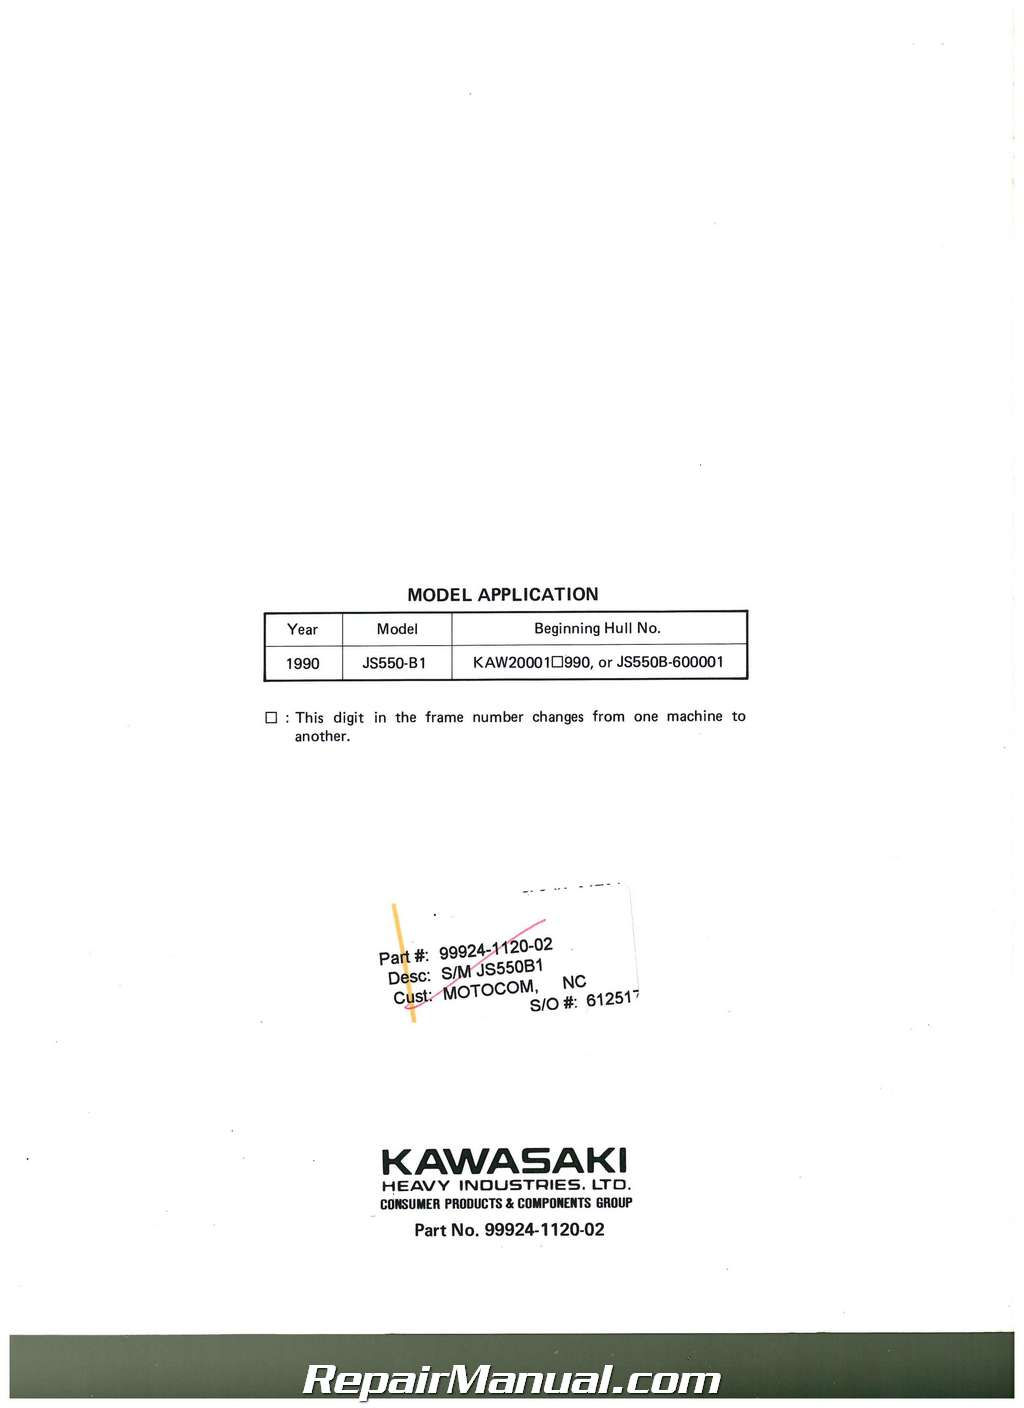 ... maintenance specifications for 1990-1993 Kawasaki JET SKI JS550-B  watercrafts. doc01149220160303143553_021.jpg  doc01149220160303143553_022.jpg ...